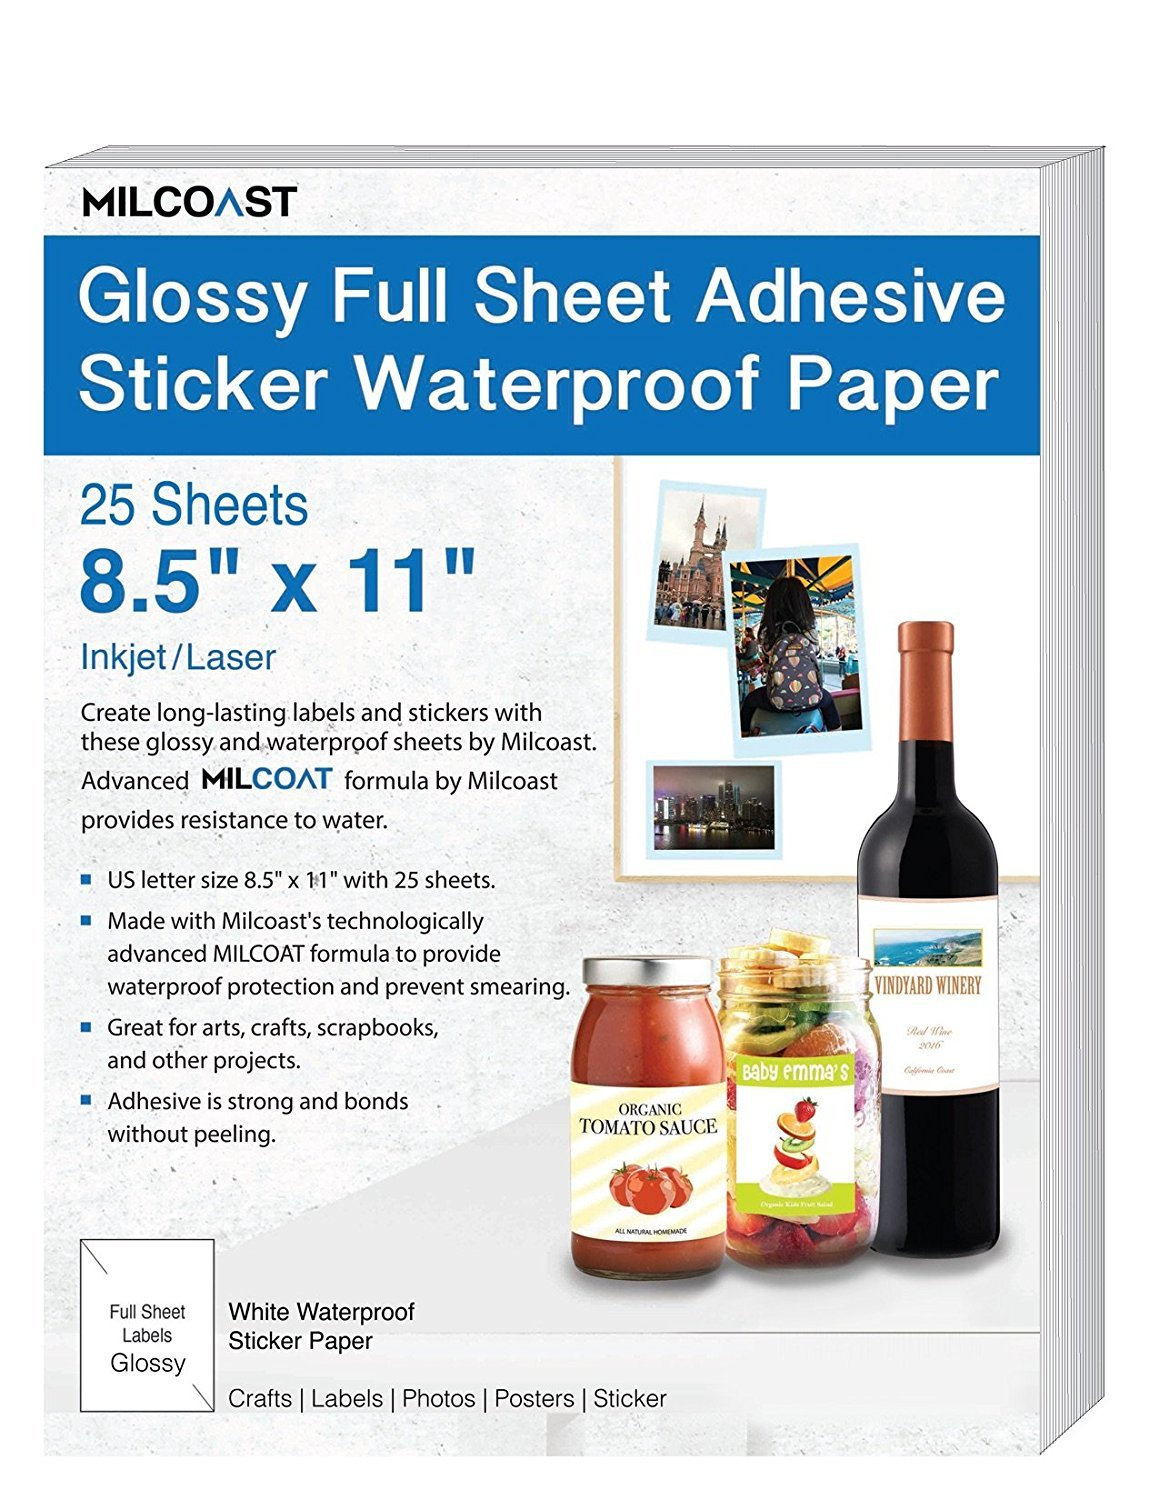 Milcoast Glossy Full Sheet 8.5'' x 11'' Adhesive Waterproof Photo Craft Paper - Works with Inkjet/Laser Printers - for Stickers, Labels, Scrapbooks, Bottle Labels, Arts and Crafts (25 Sheets) by Milcoast